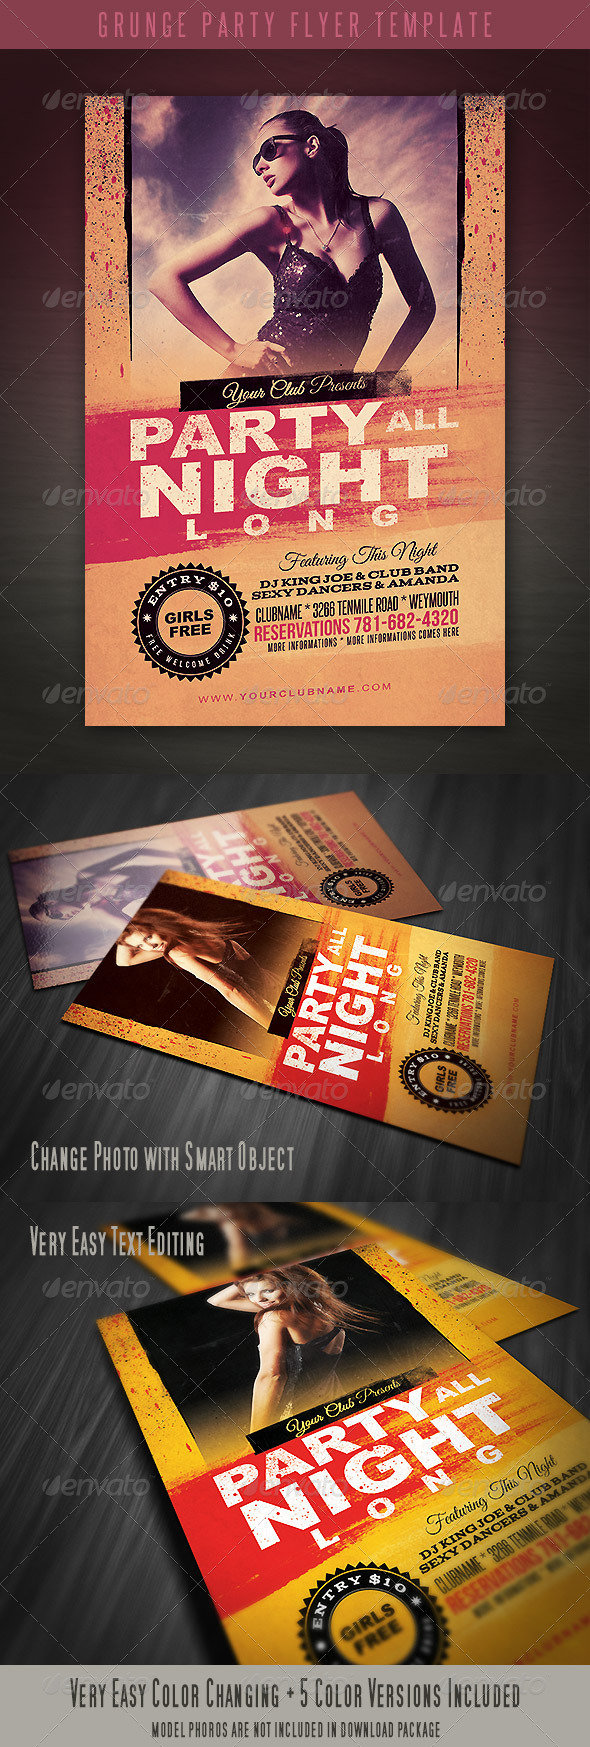 Grunge Party Flyer Template - Clubs & Parties Events